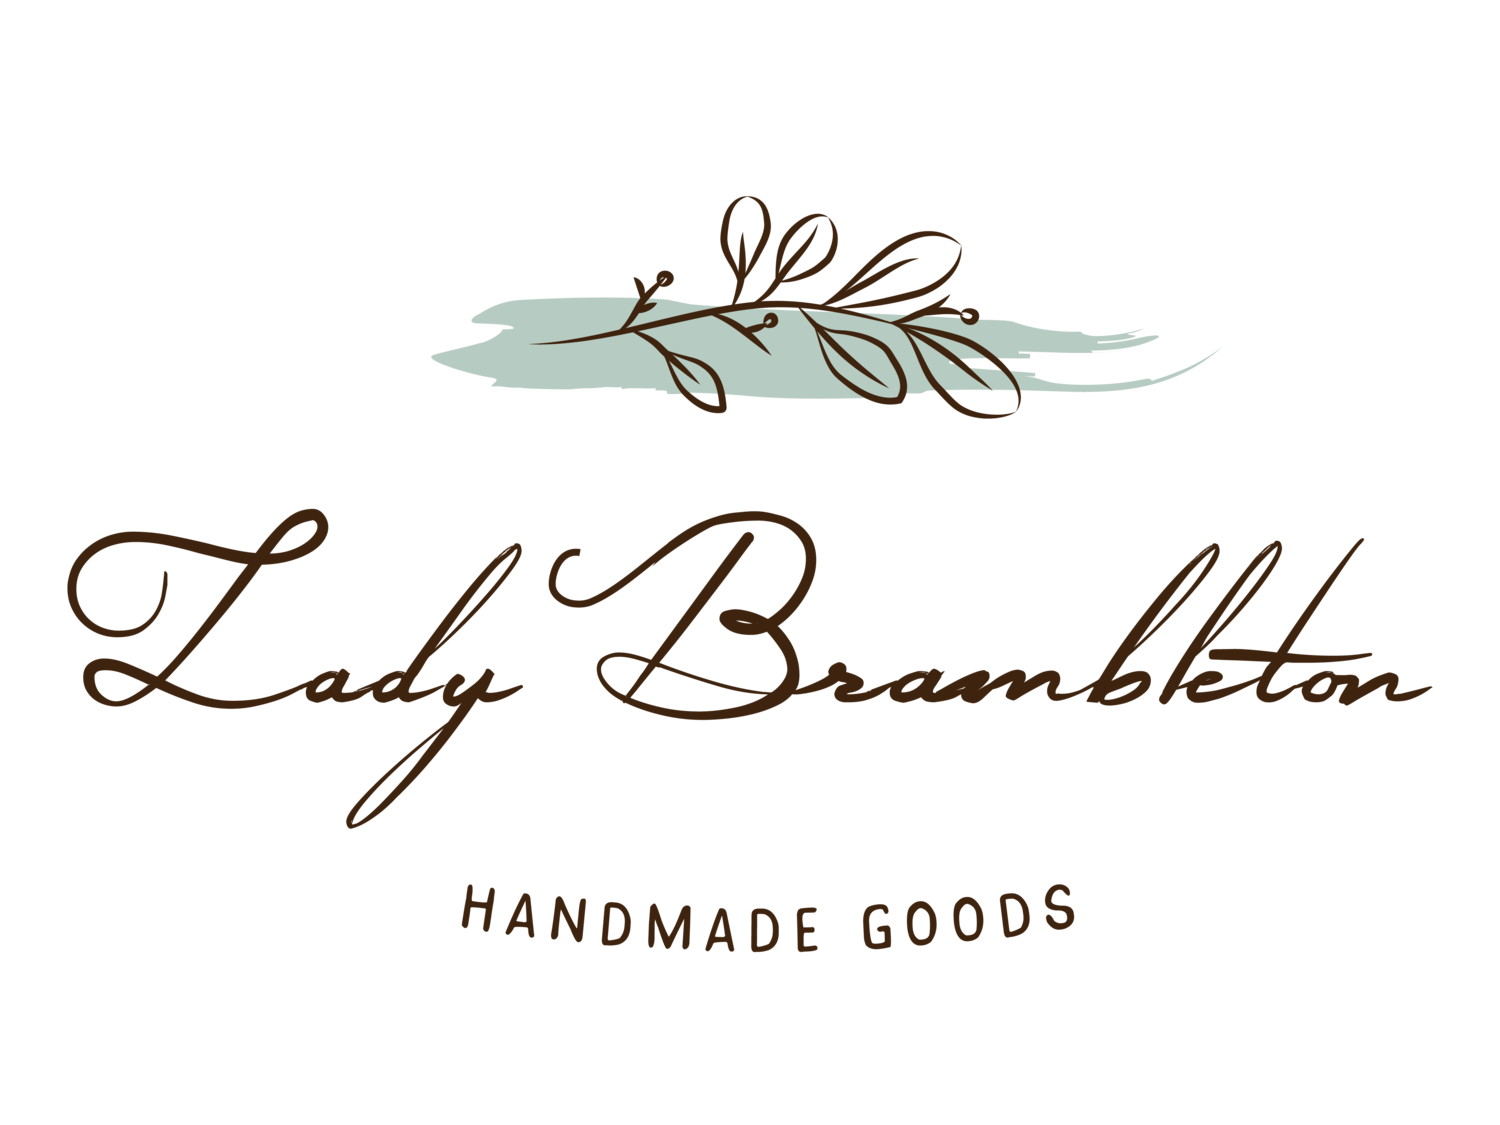 Lady Brambleton